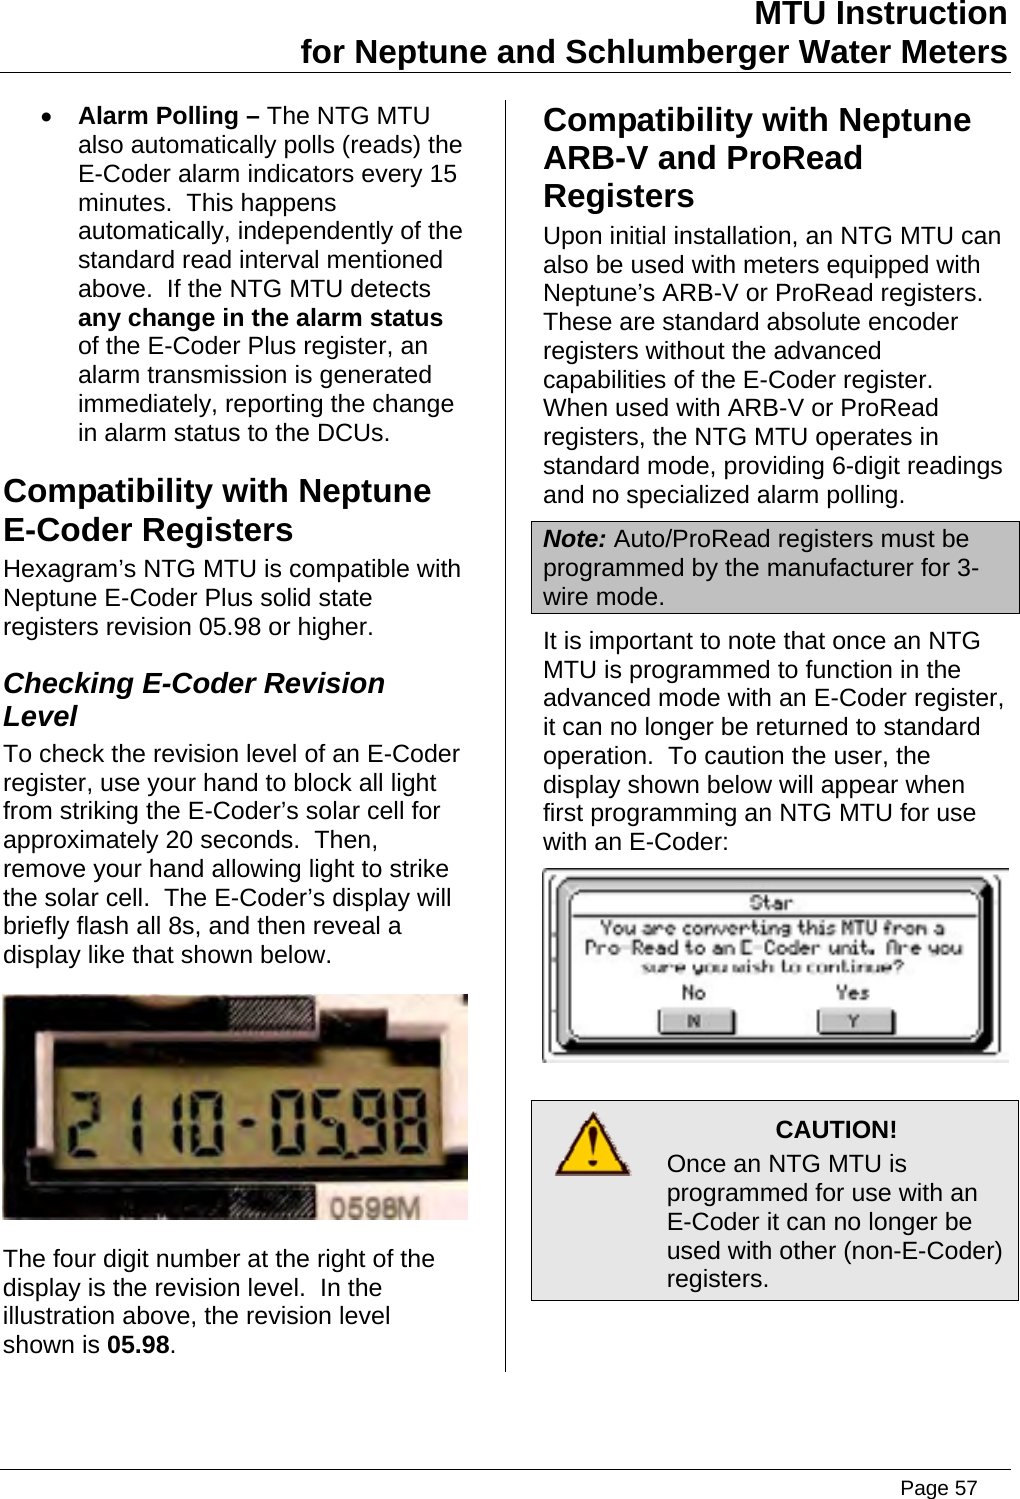 Neptune Water Meter Wiring Diagram Free All Mode Wireing Page 57 Of Transmitter For Reading User Manual Installation